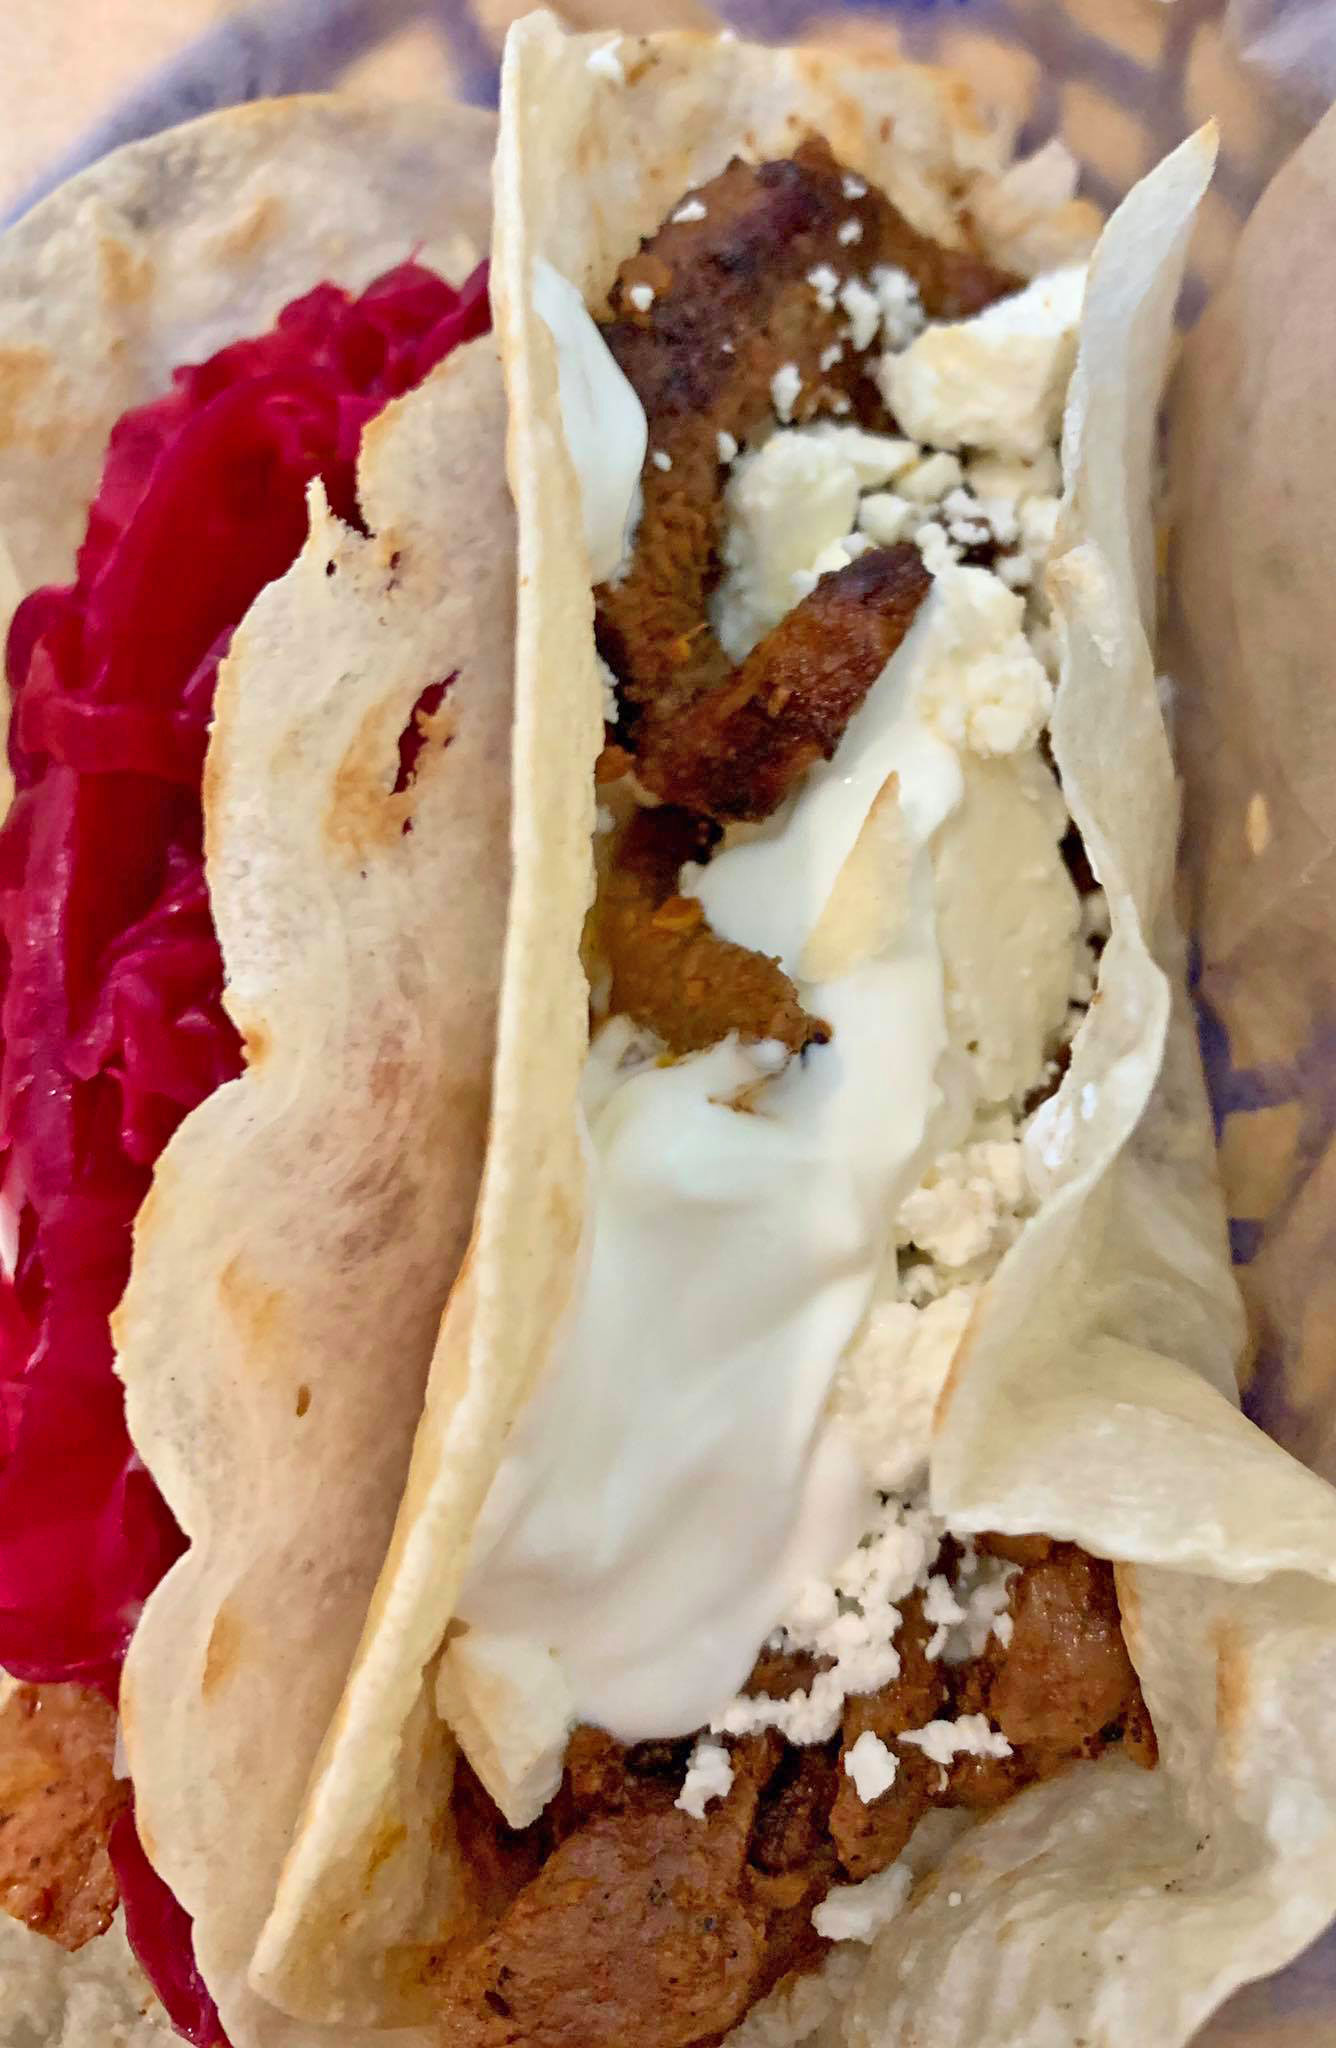 On the right is the al Pastor with feta and sour cream